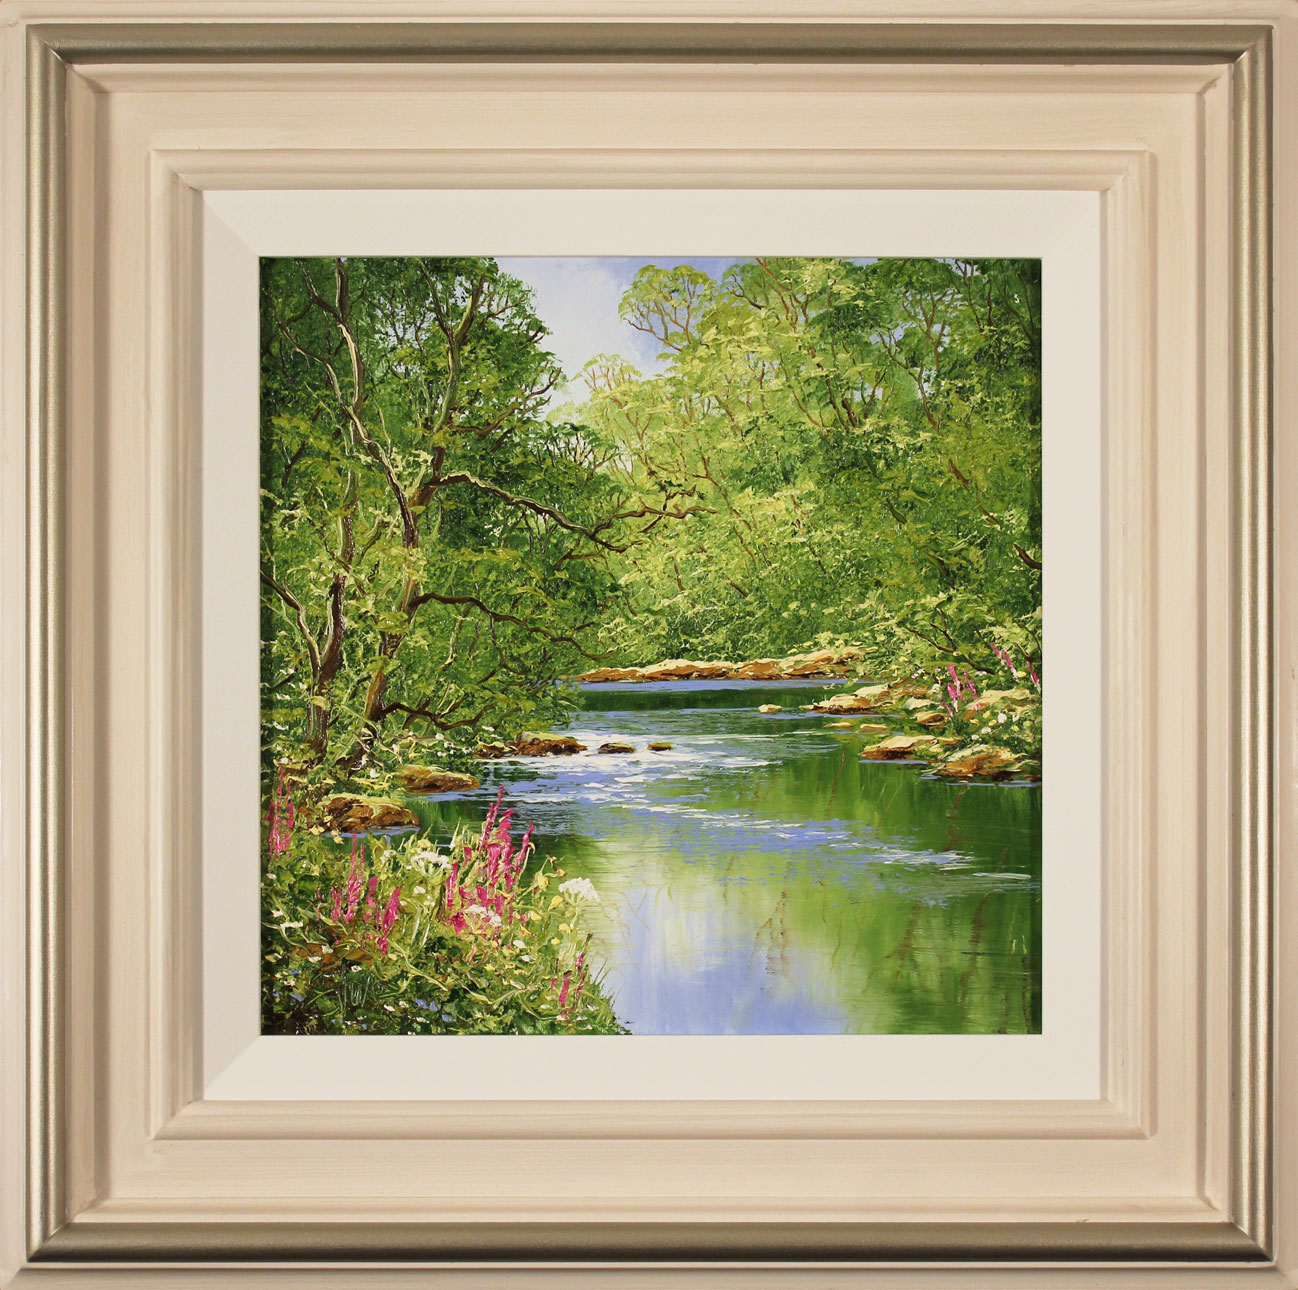 Terry Evans, Original oil painting on canvas, Woodland Stream Click to enlarge